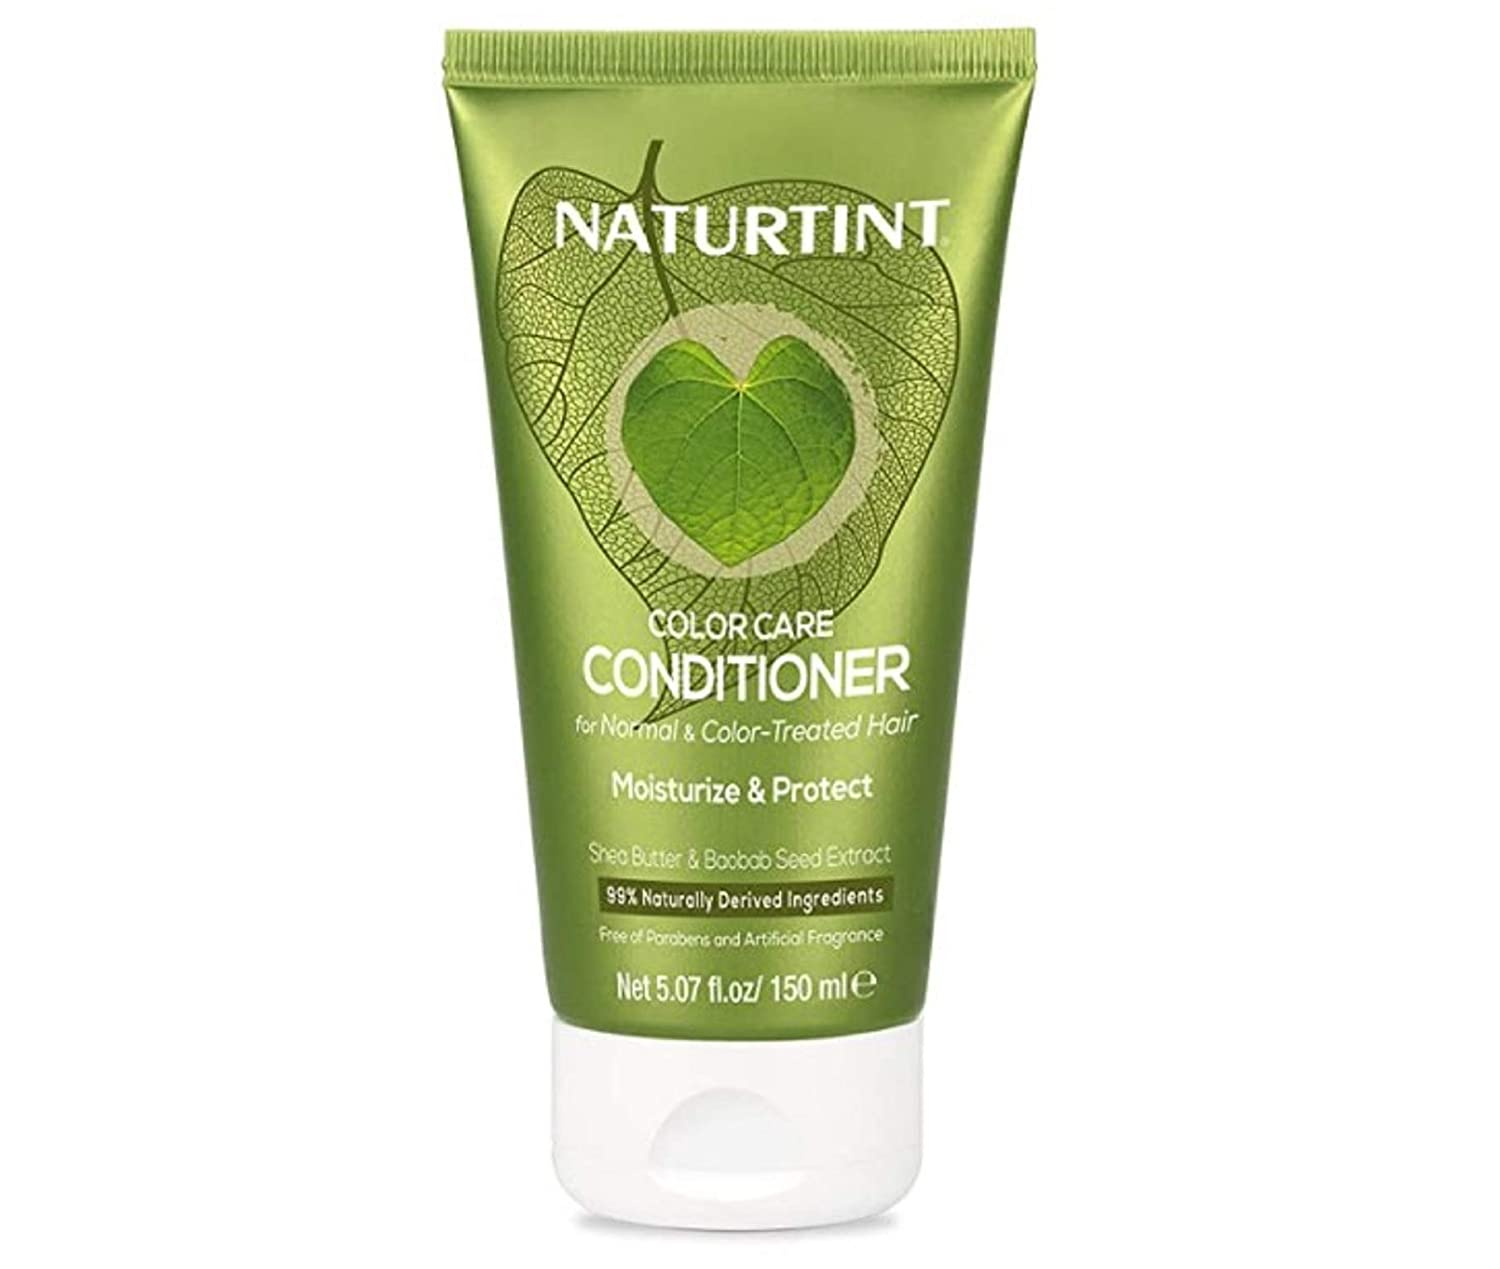 Naturtint Color Care Conditioner for Color-Treated, Dry, or Normal Hair Formulated to Help Moisturize, Detangle, and Add Lustrous Shine for Manageable, Silky Smooth Hair